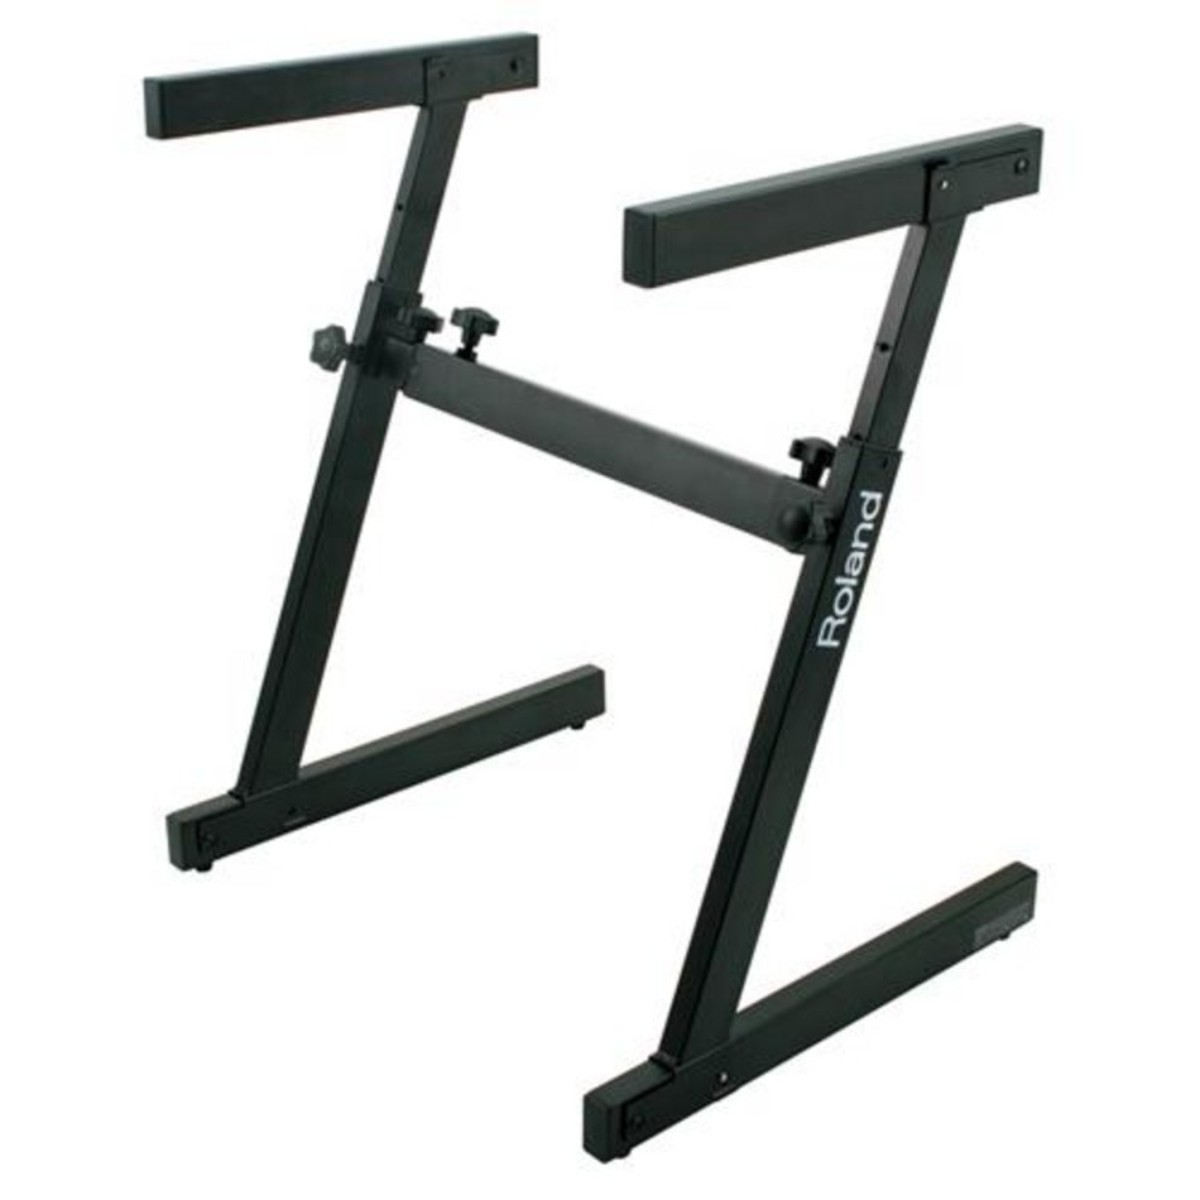 Roland KS18Z Z-Frame Keyboard Stand - Box Opened at Gear4music.com